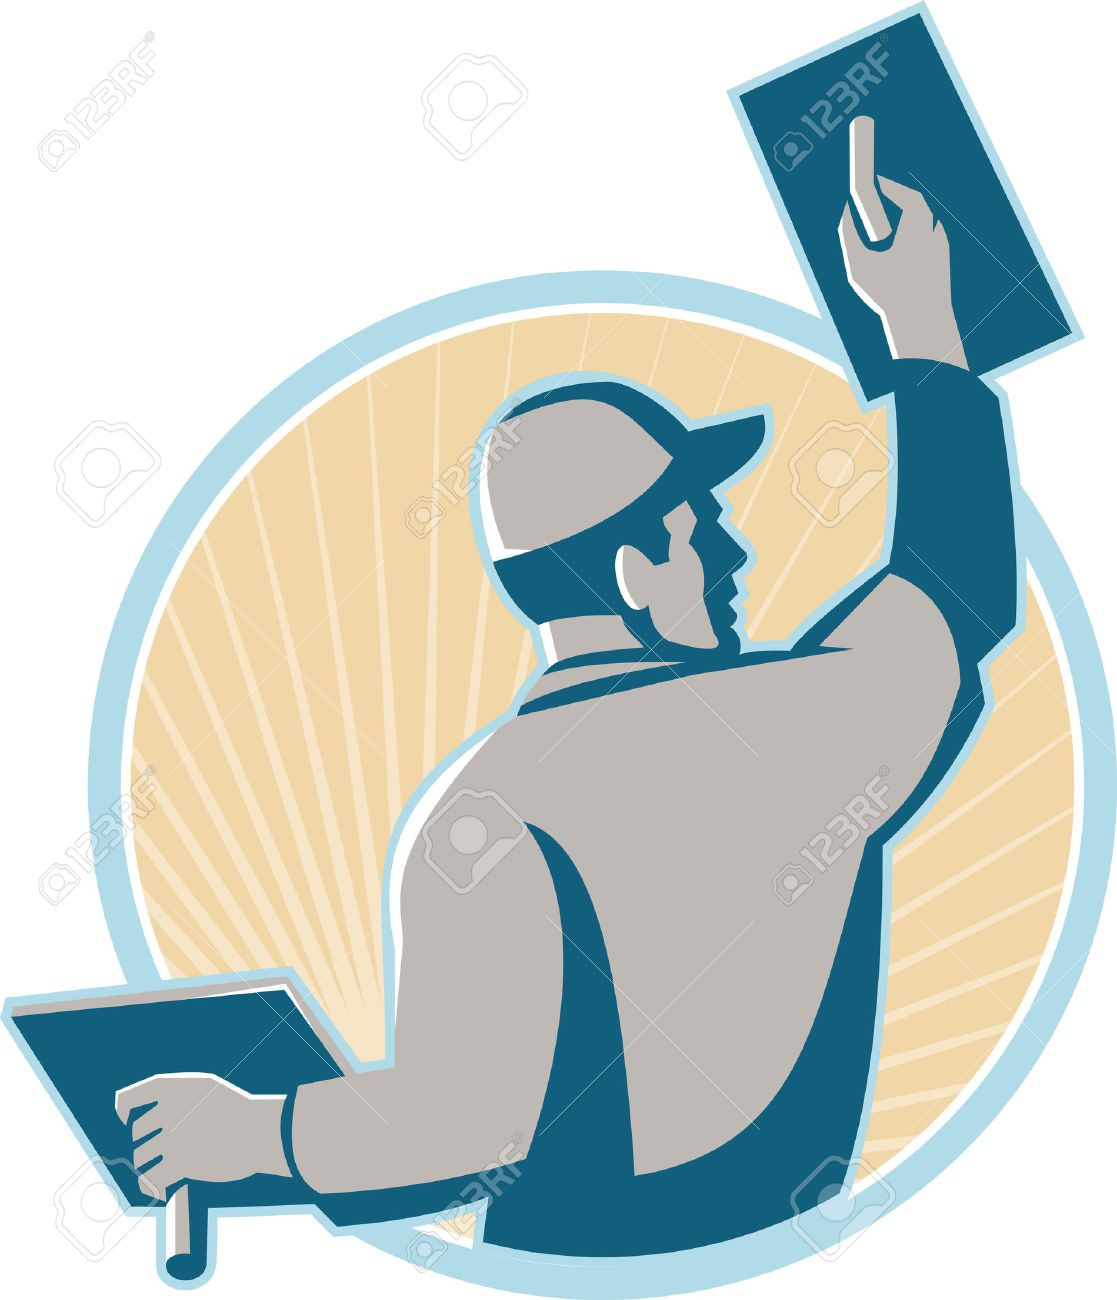 Illustration of a plasterer construction mason worker with trowel at work set inside a circle with sunburst in the background done in retro style. Stock Vector - 37095303